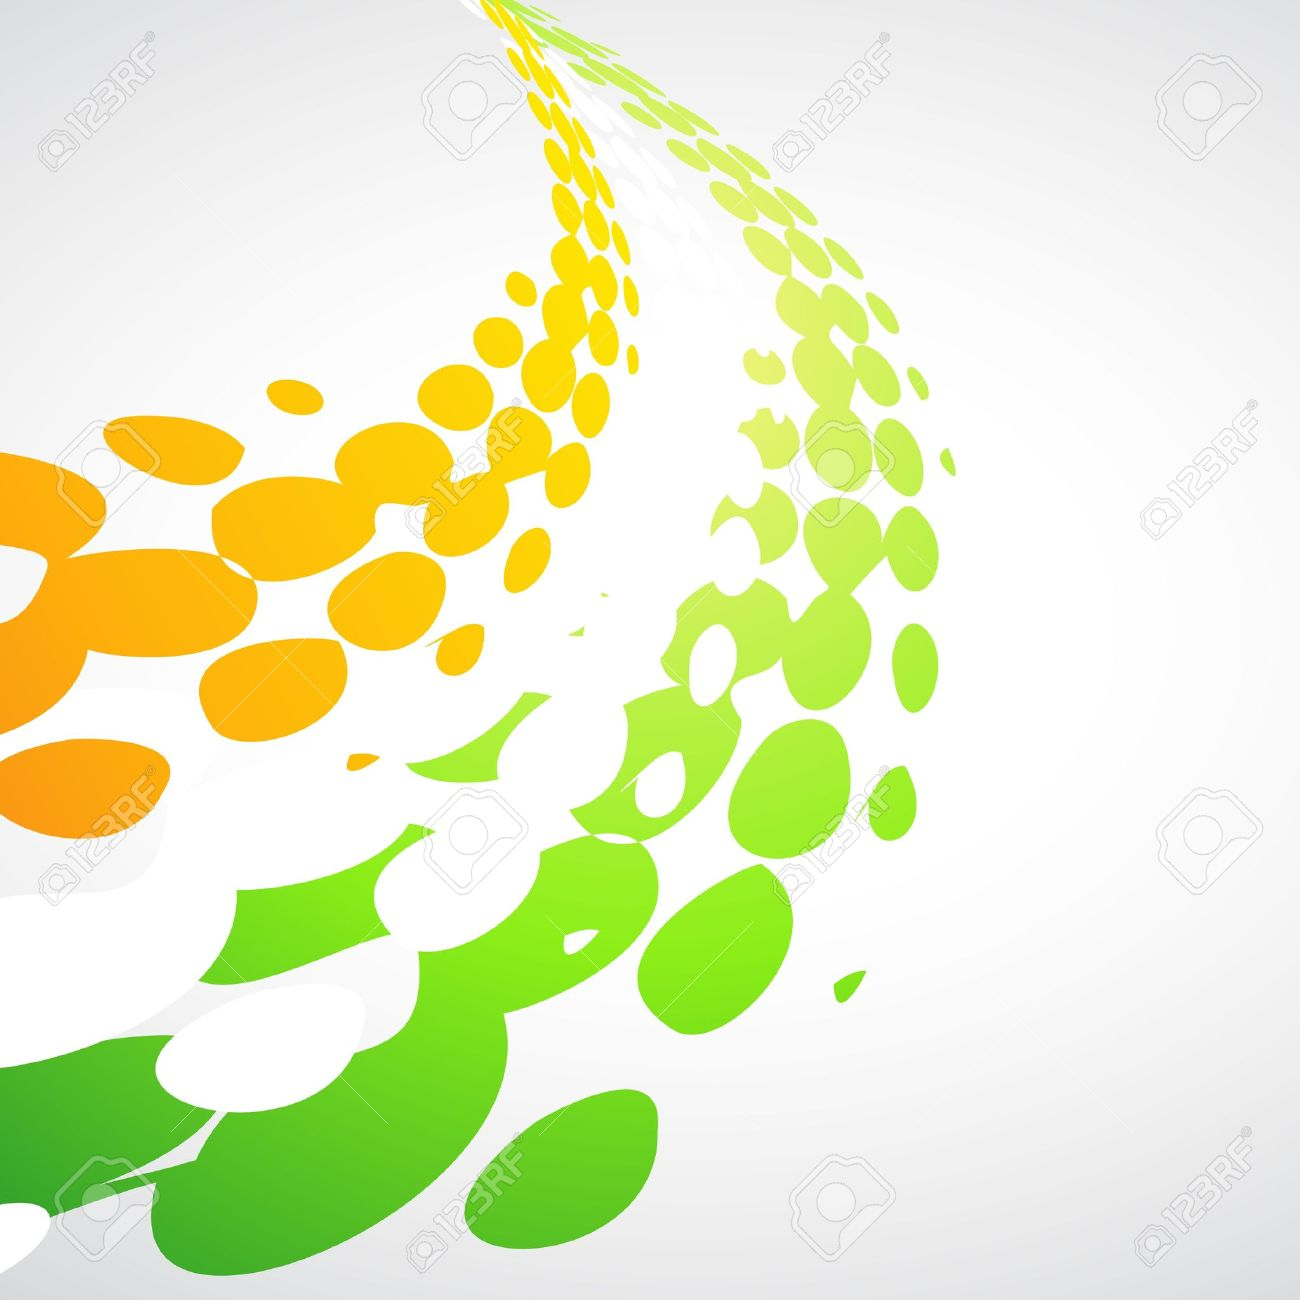 Tricolor Wave Design Illustration Royalty Free Cliparts, Vectors.